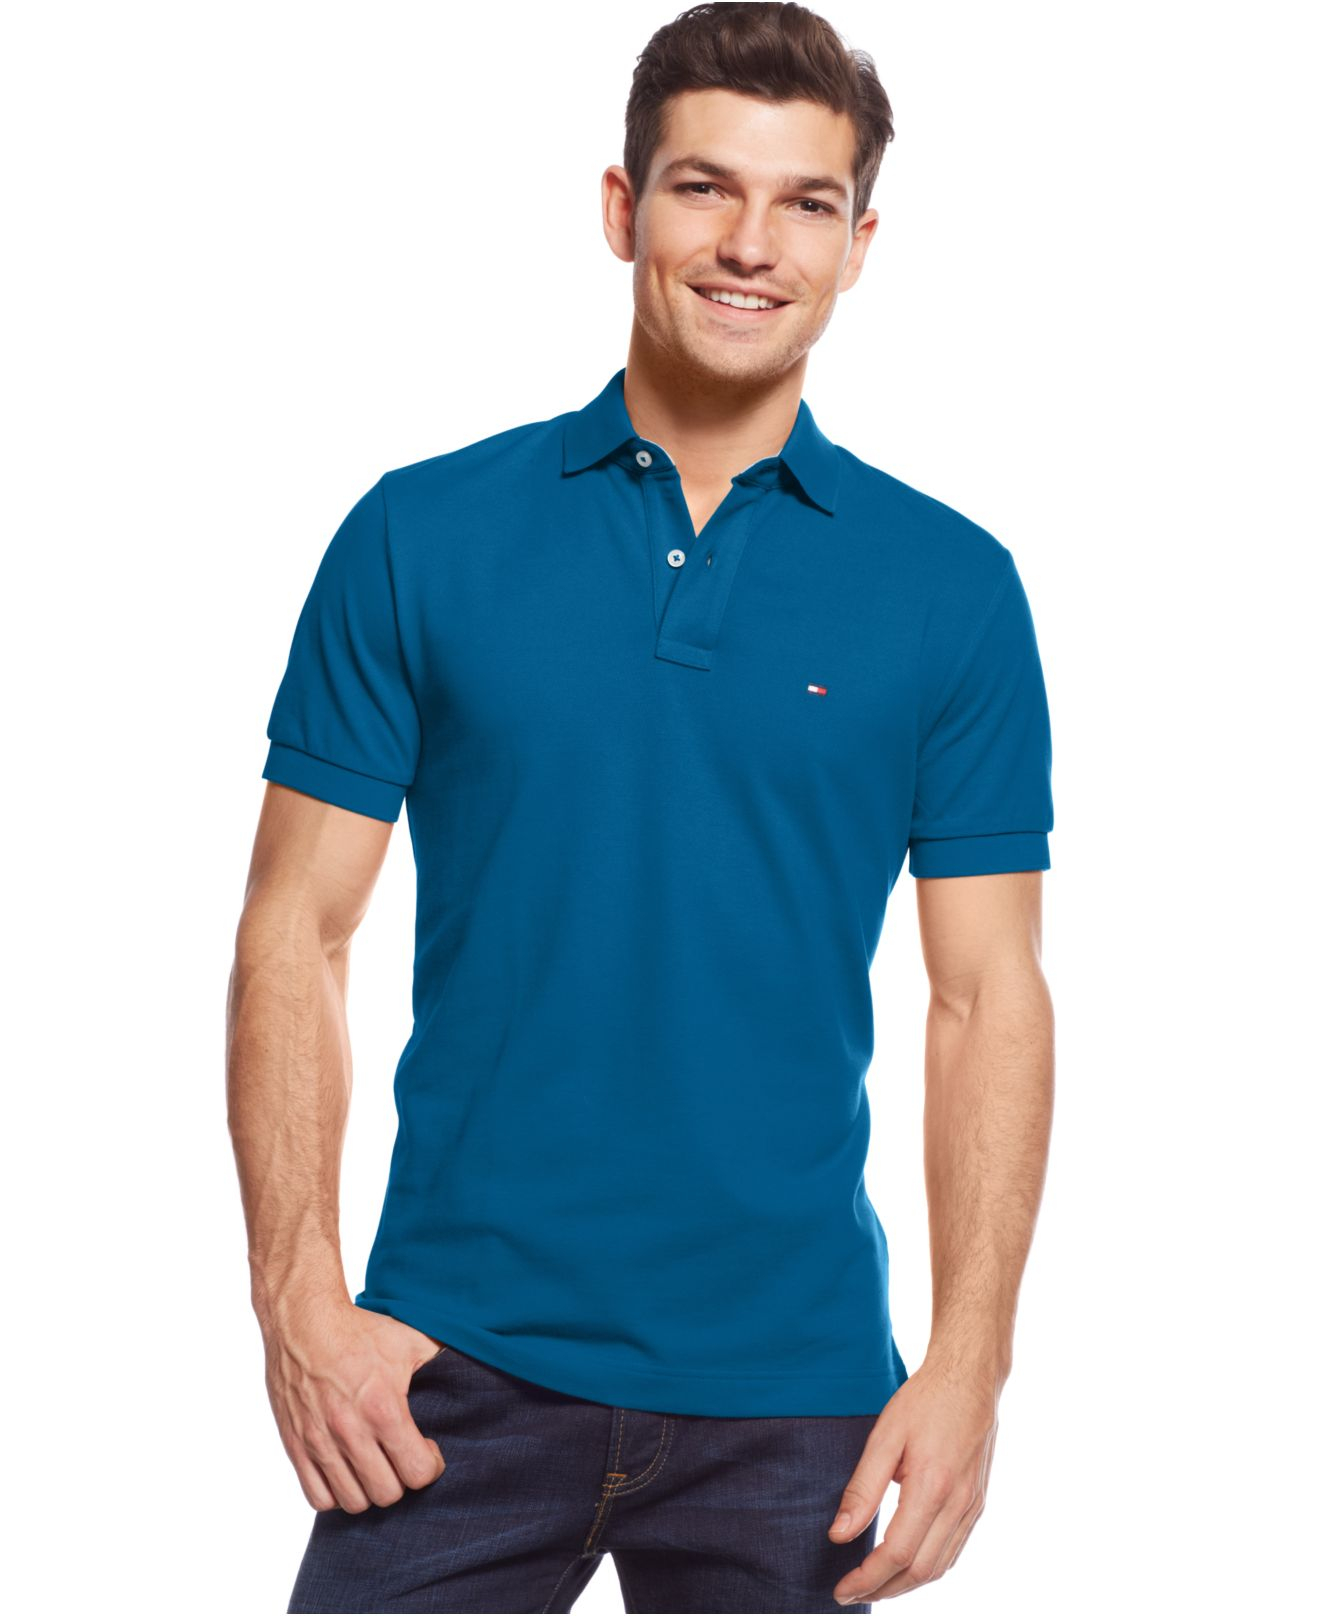 5846dcb5 Tommy Hilfiger Custom-fit Ivy Polo in Blue for Men - Lyst